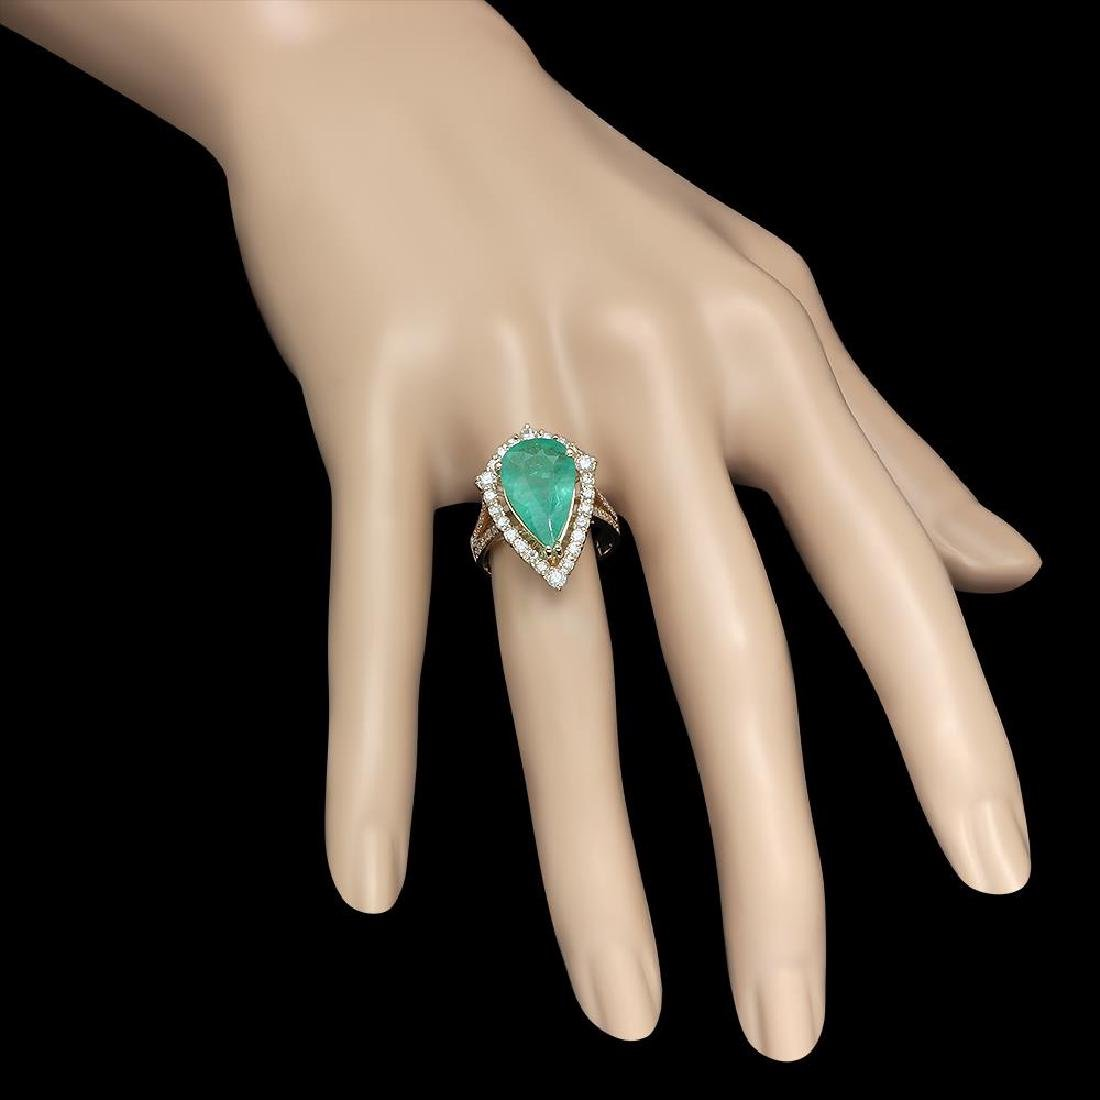 14K Gold 3.82 Emerald 1.05 Diamond Ring - 3